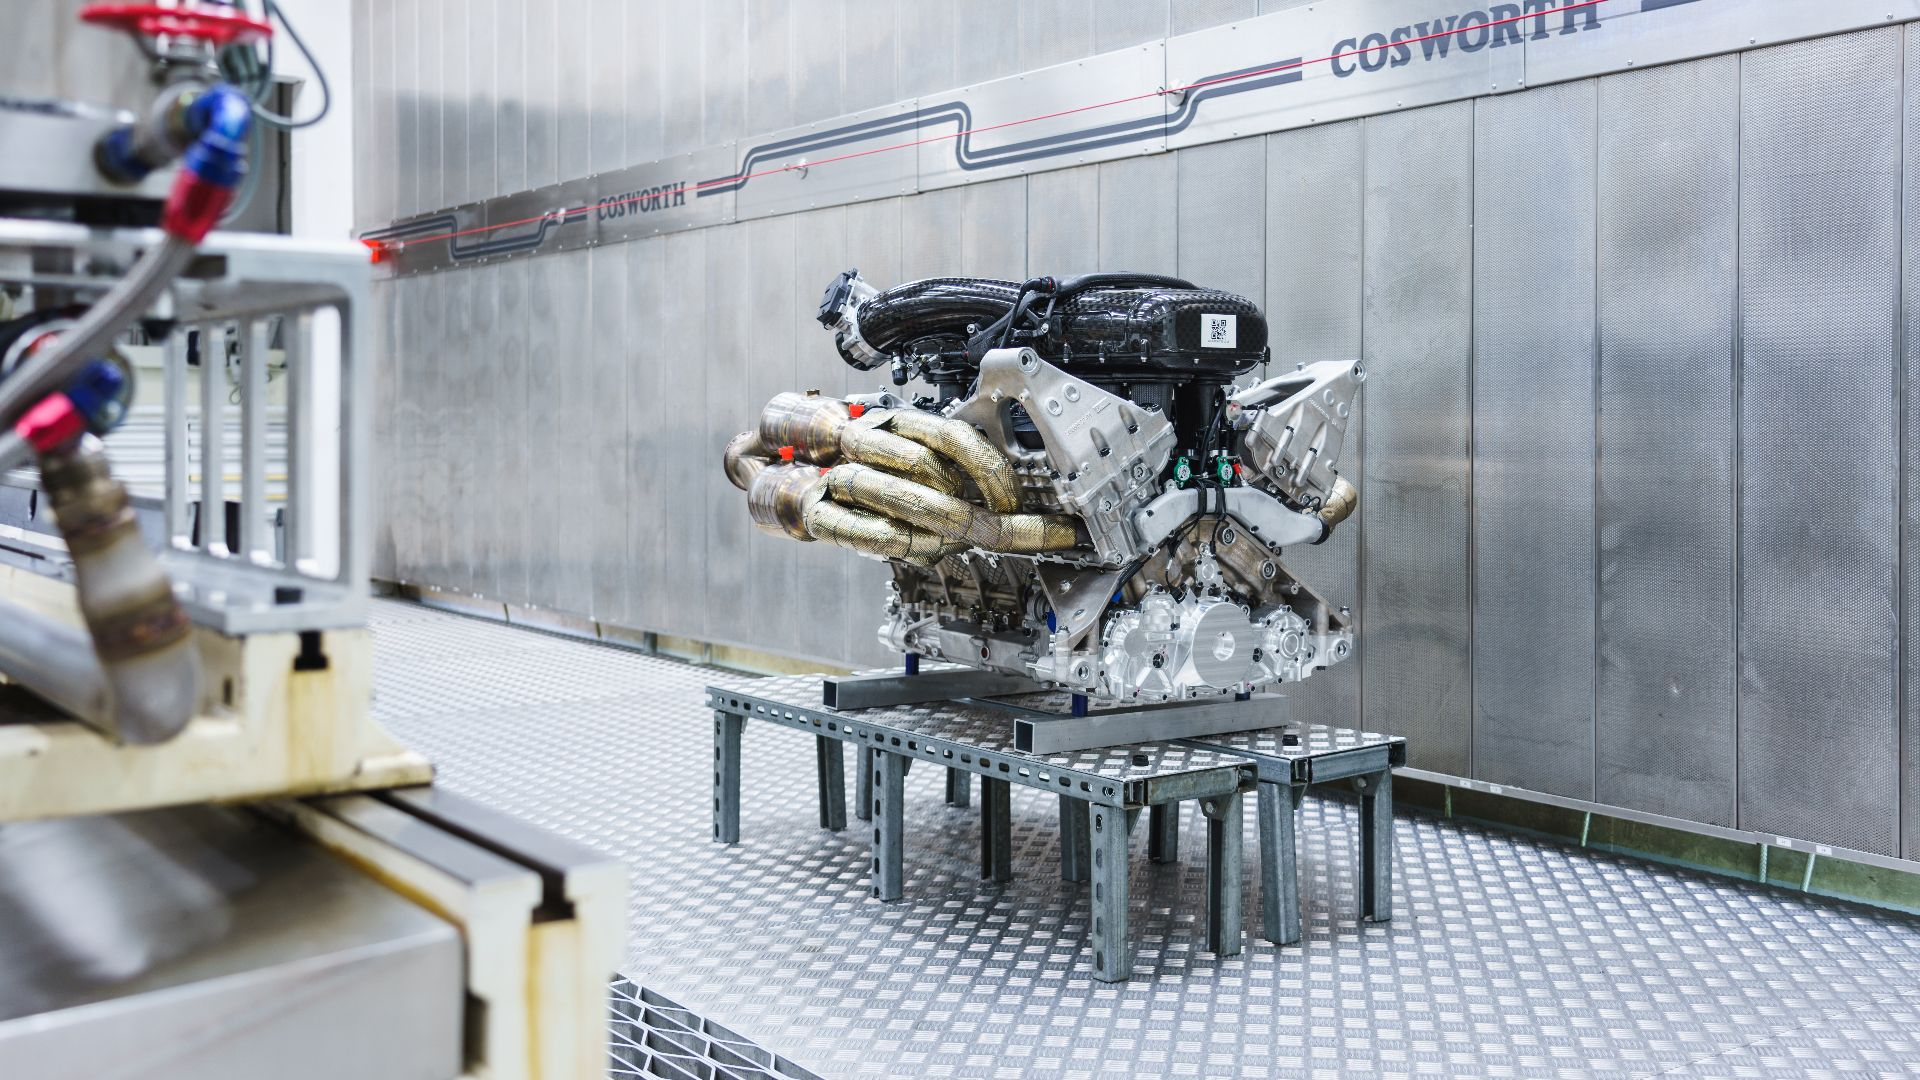 Aston Martin Valkyrie V12 Cosworth engine